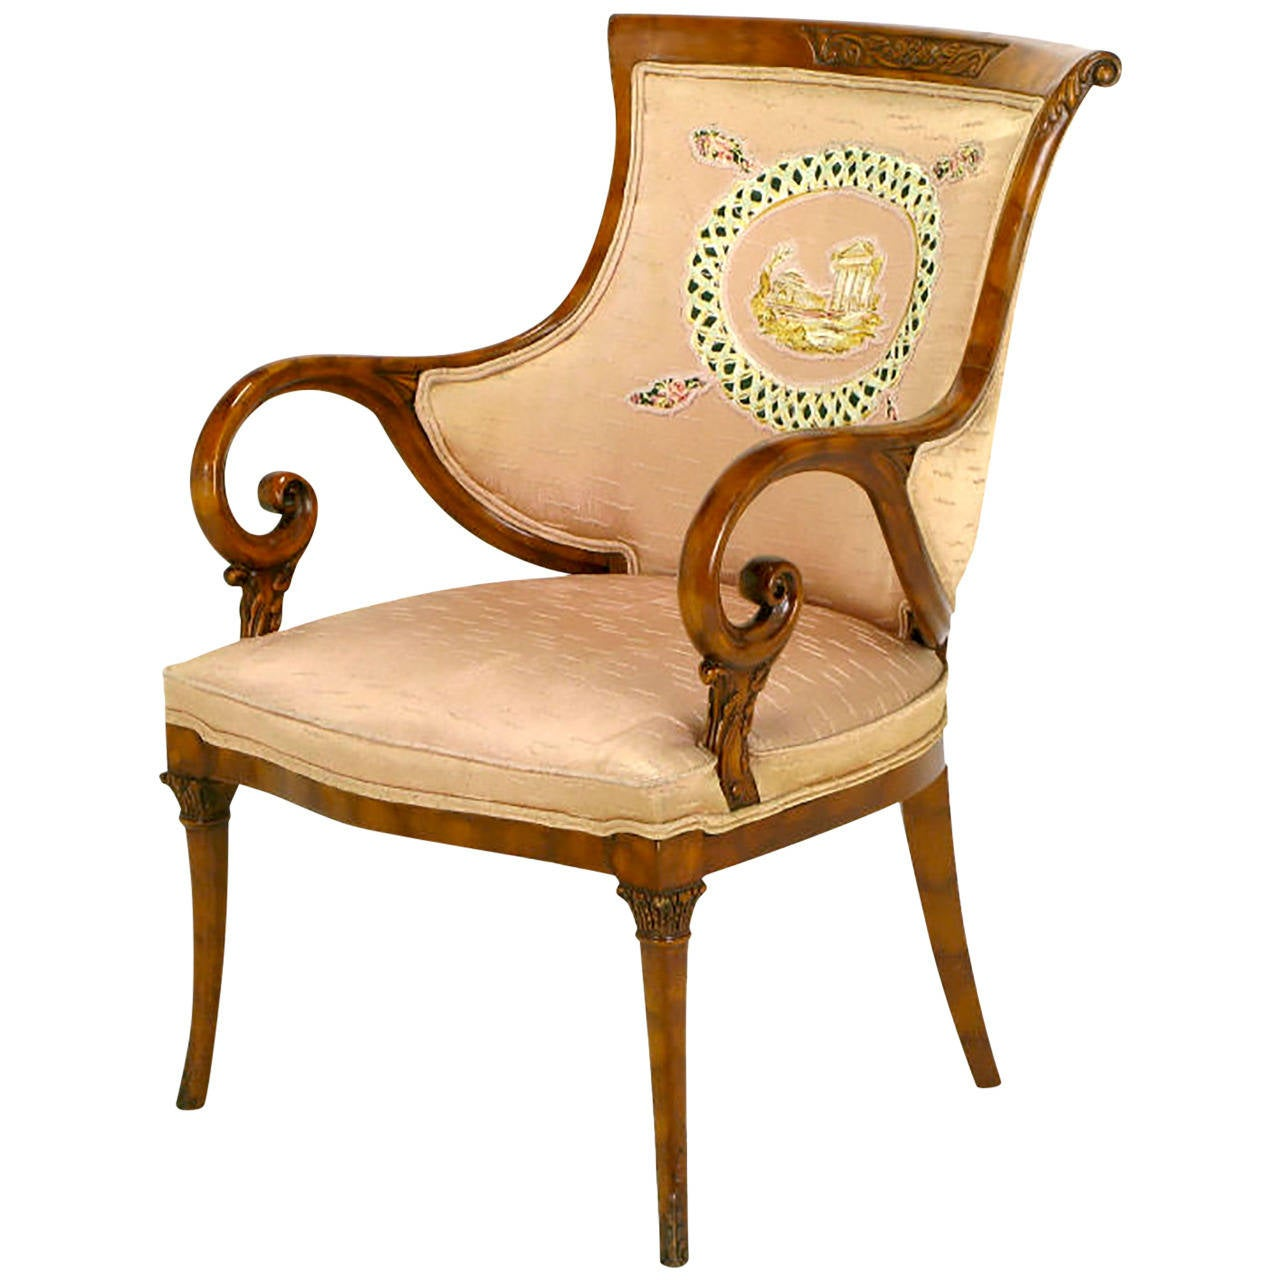 1940s Italian Regency Armchair with Quilted Silk Upholstery